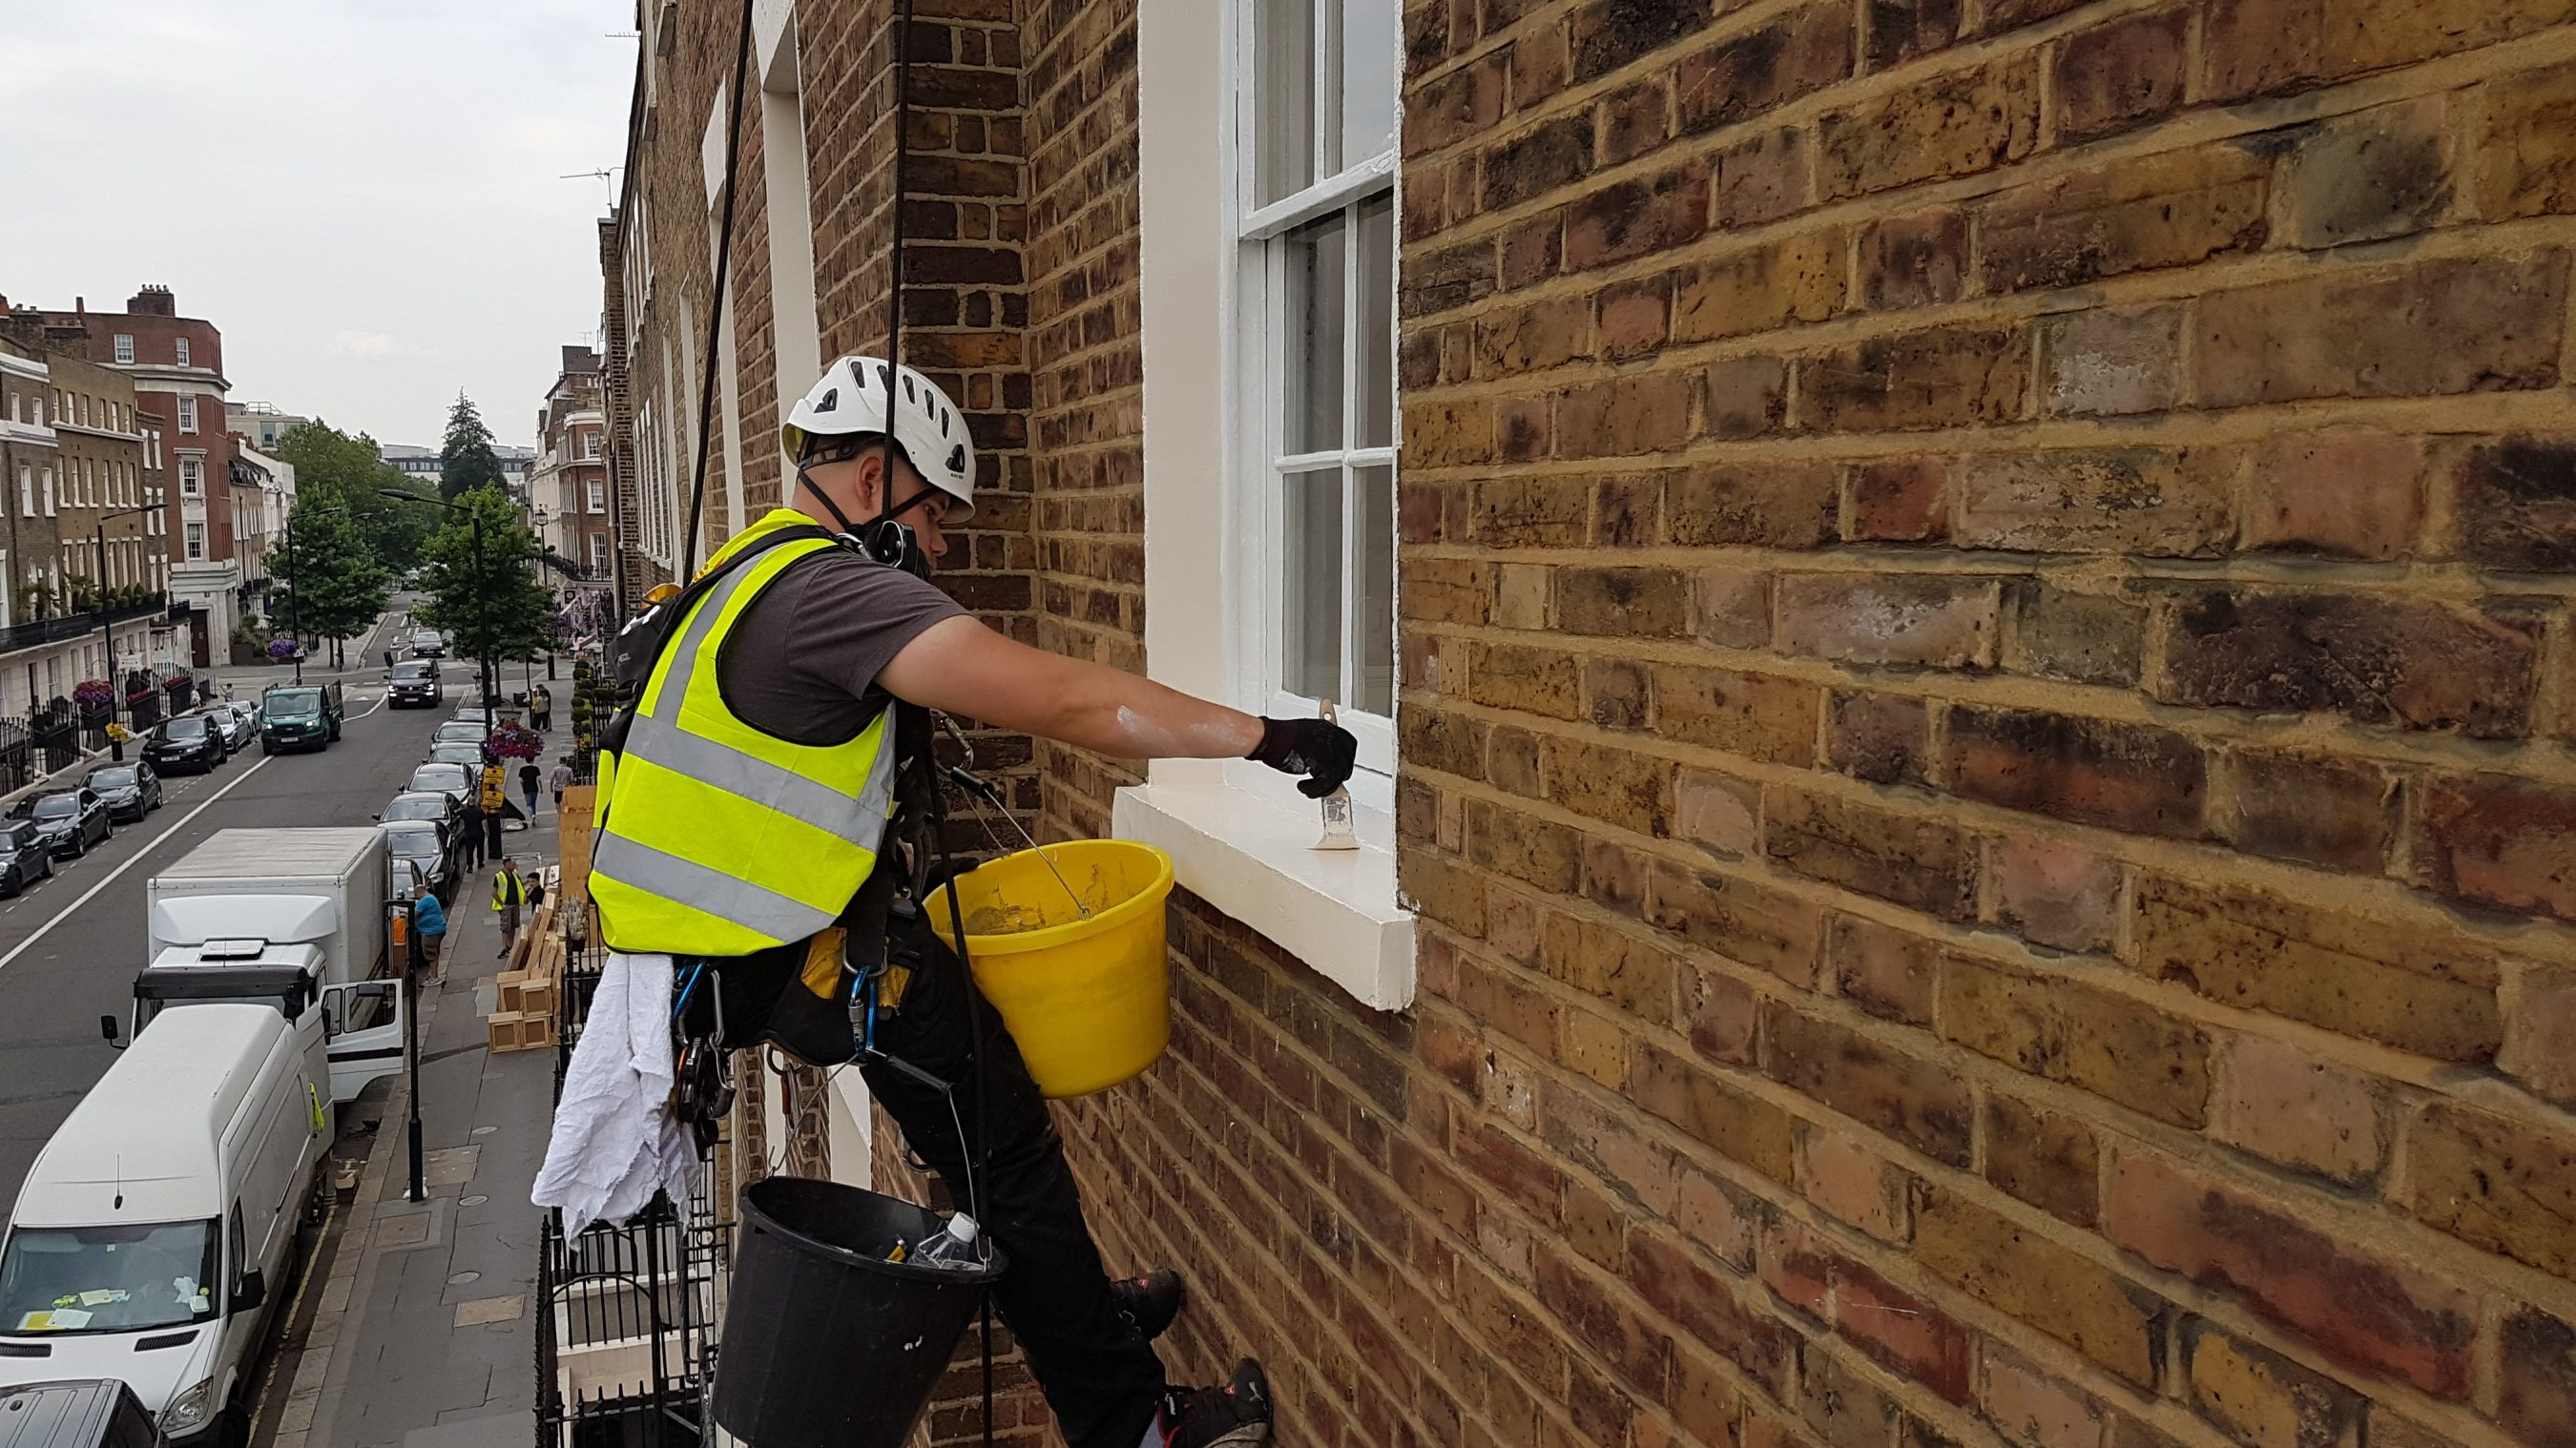 abseiling sash window painting